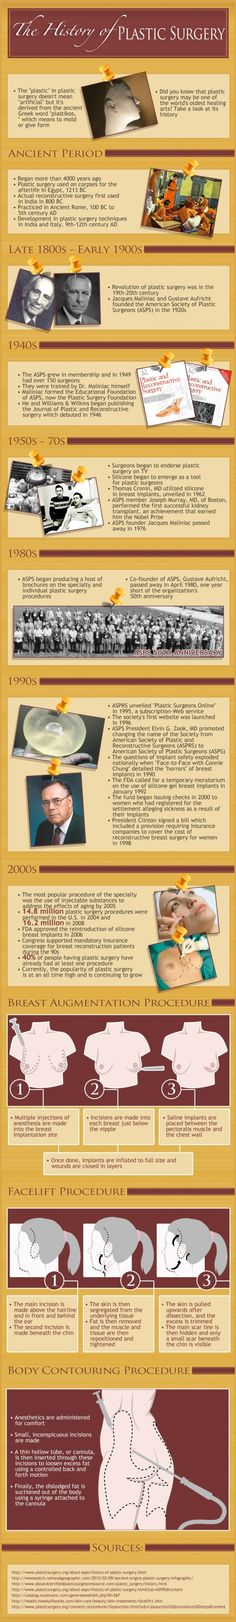 The Fascinating History of Plastic Surgery | NerdGraph Infographics